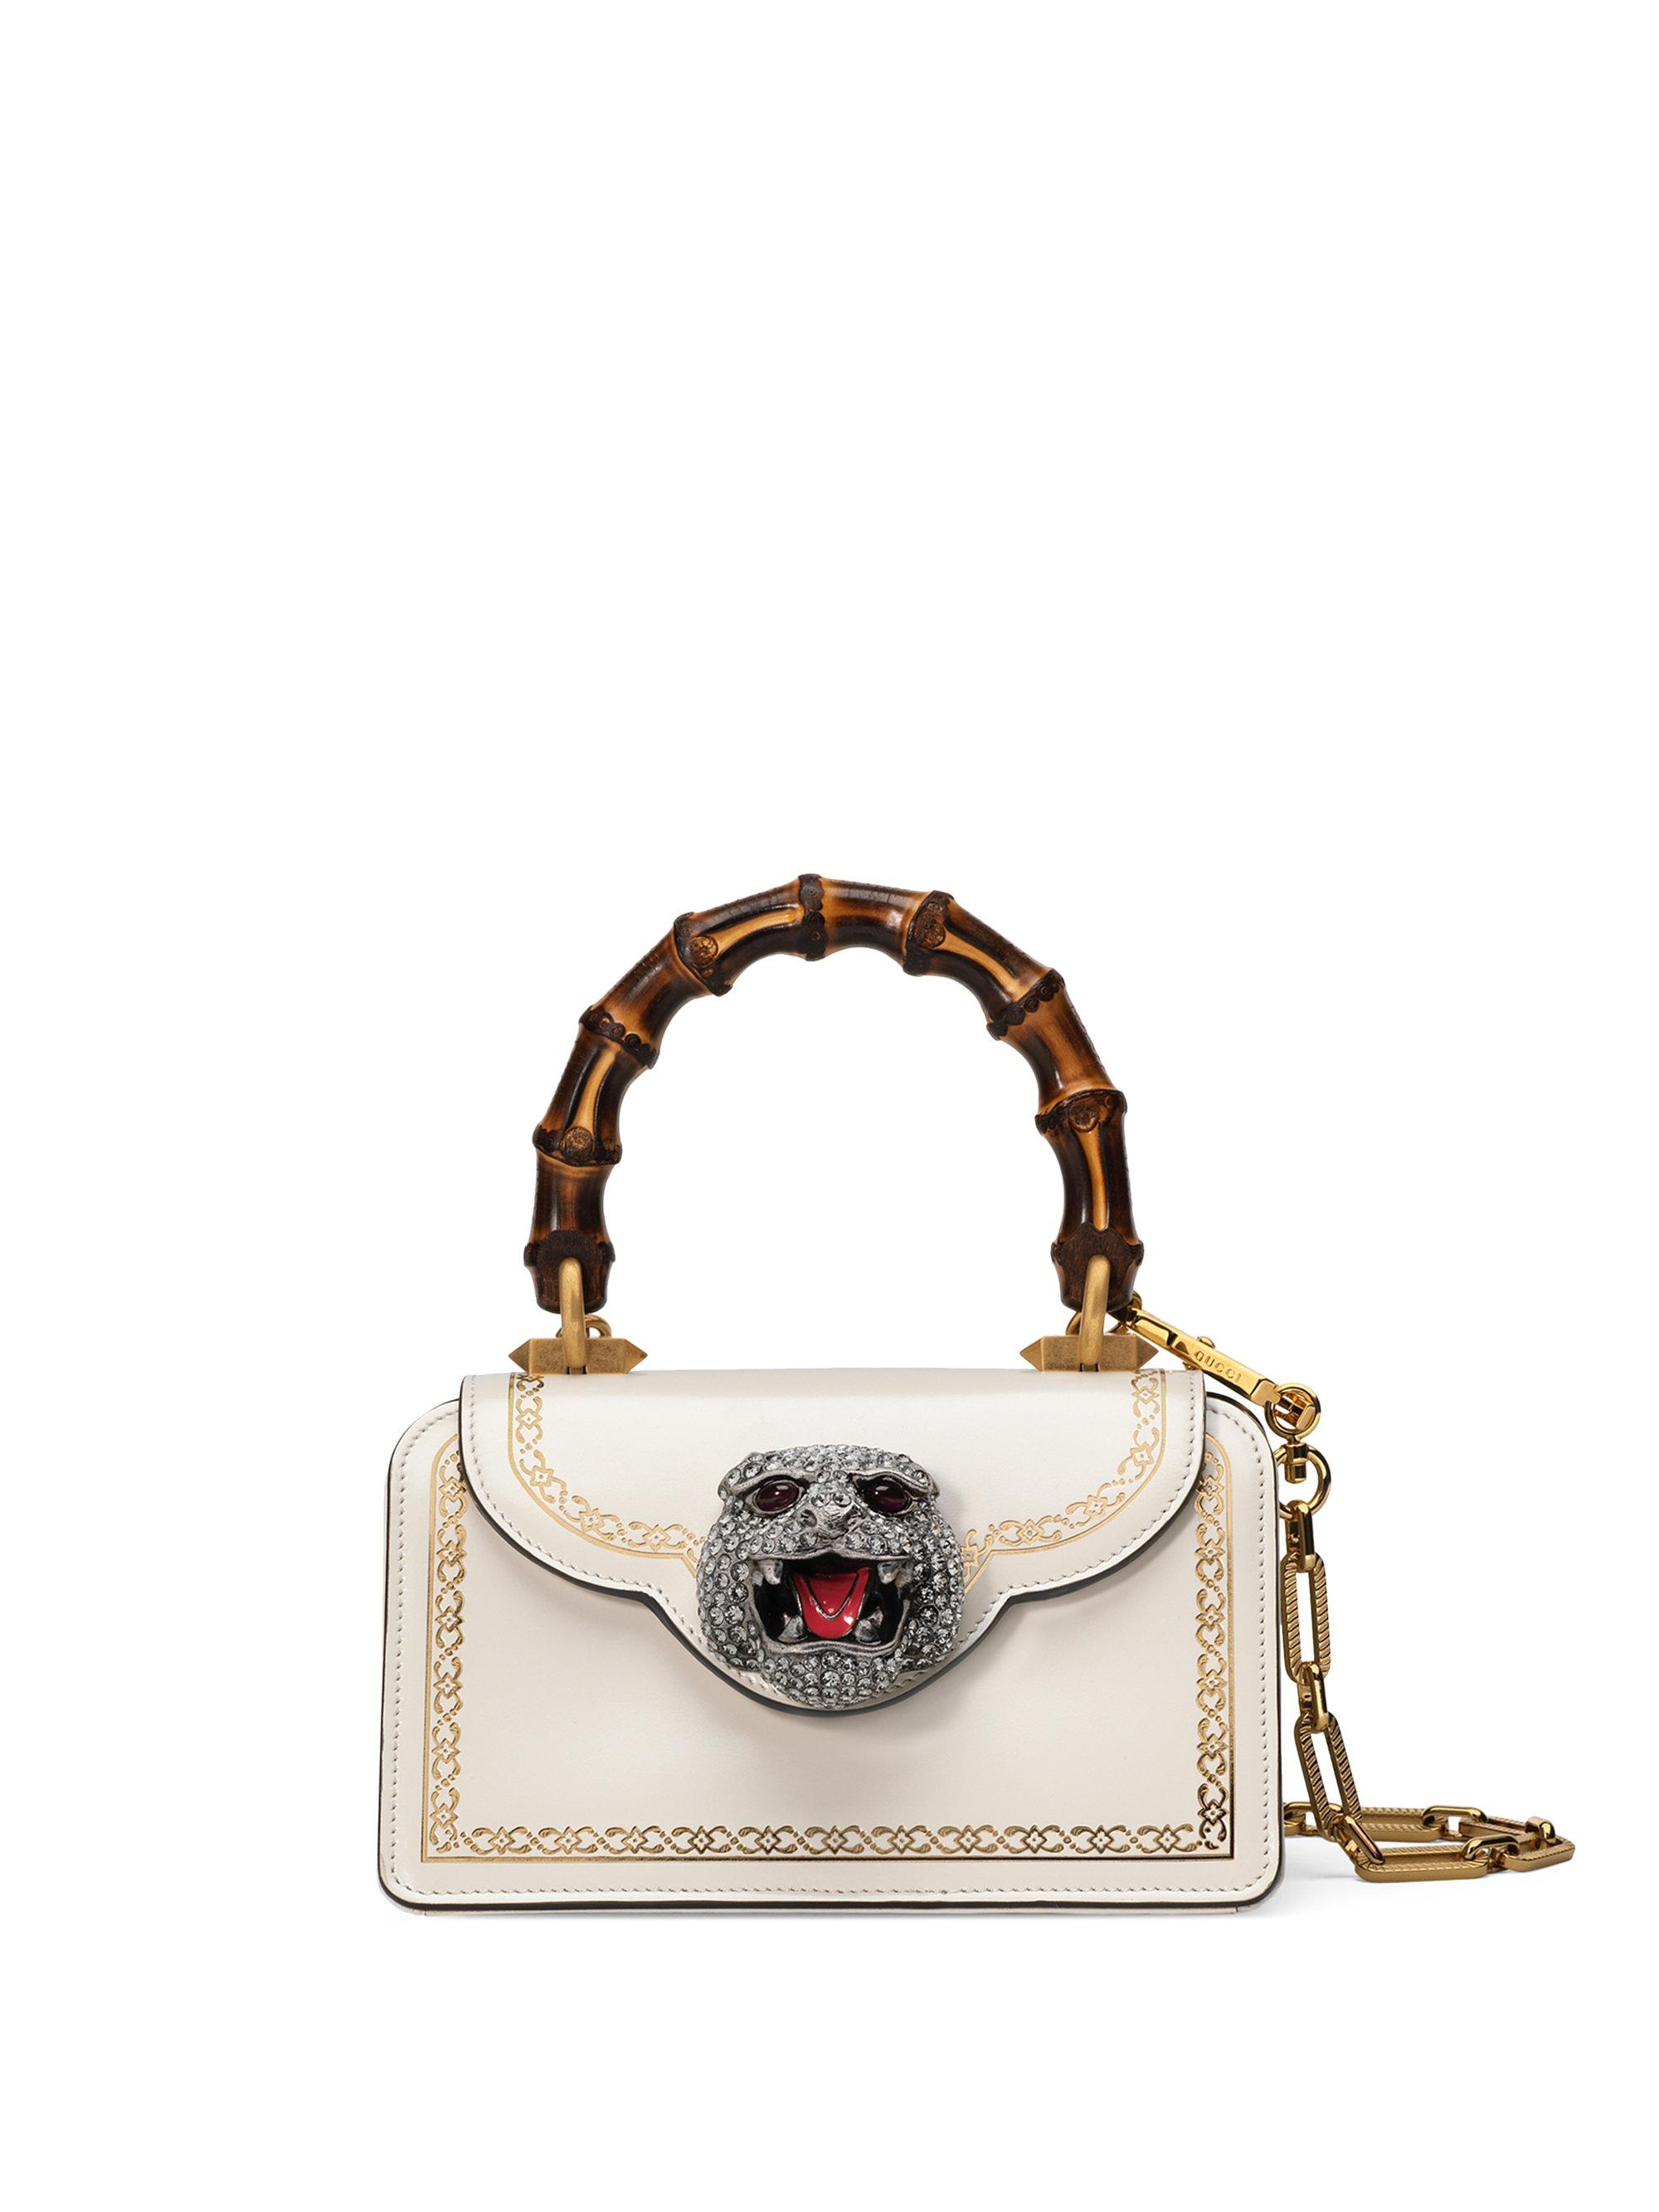 aa092f9c1c2d06 Gucci Frame Print Leather Mini Top Handle Bag in White - Lyst